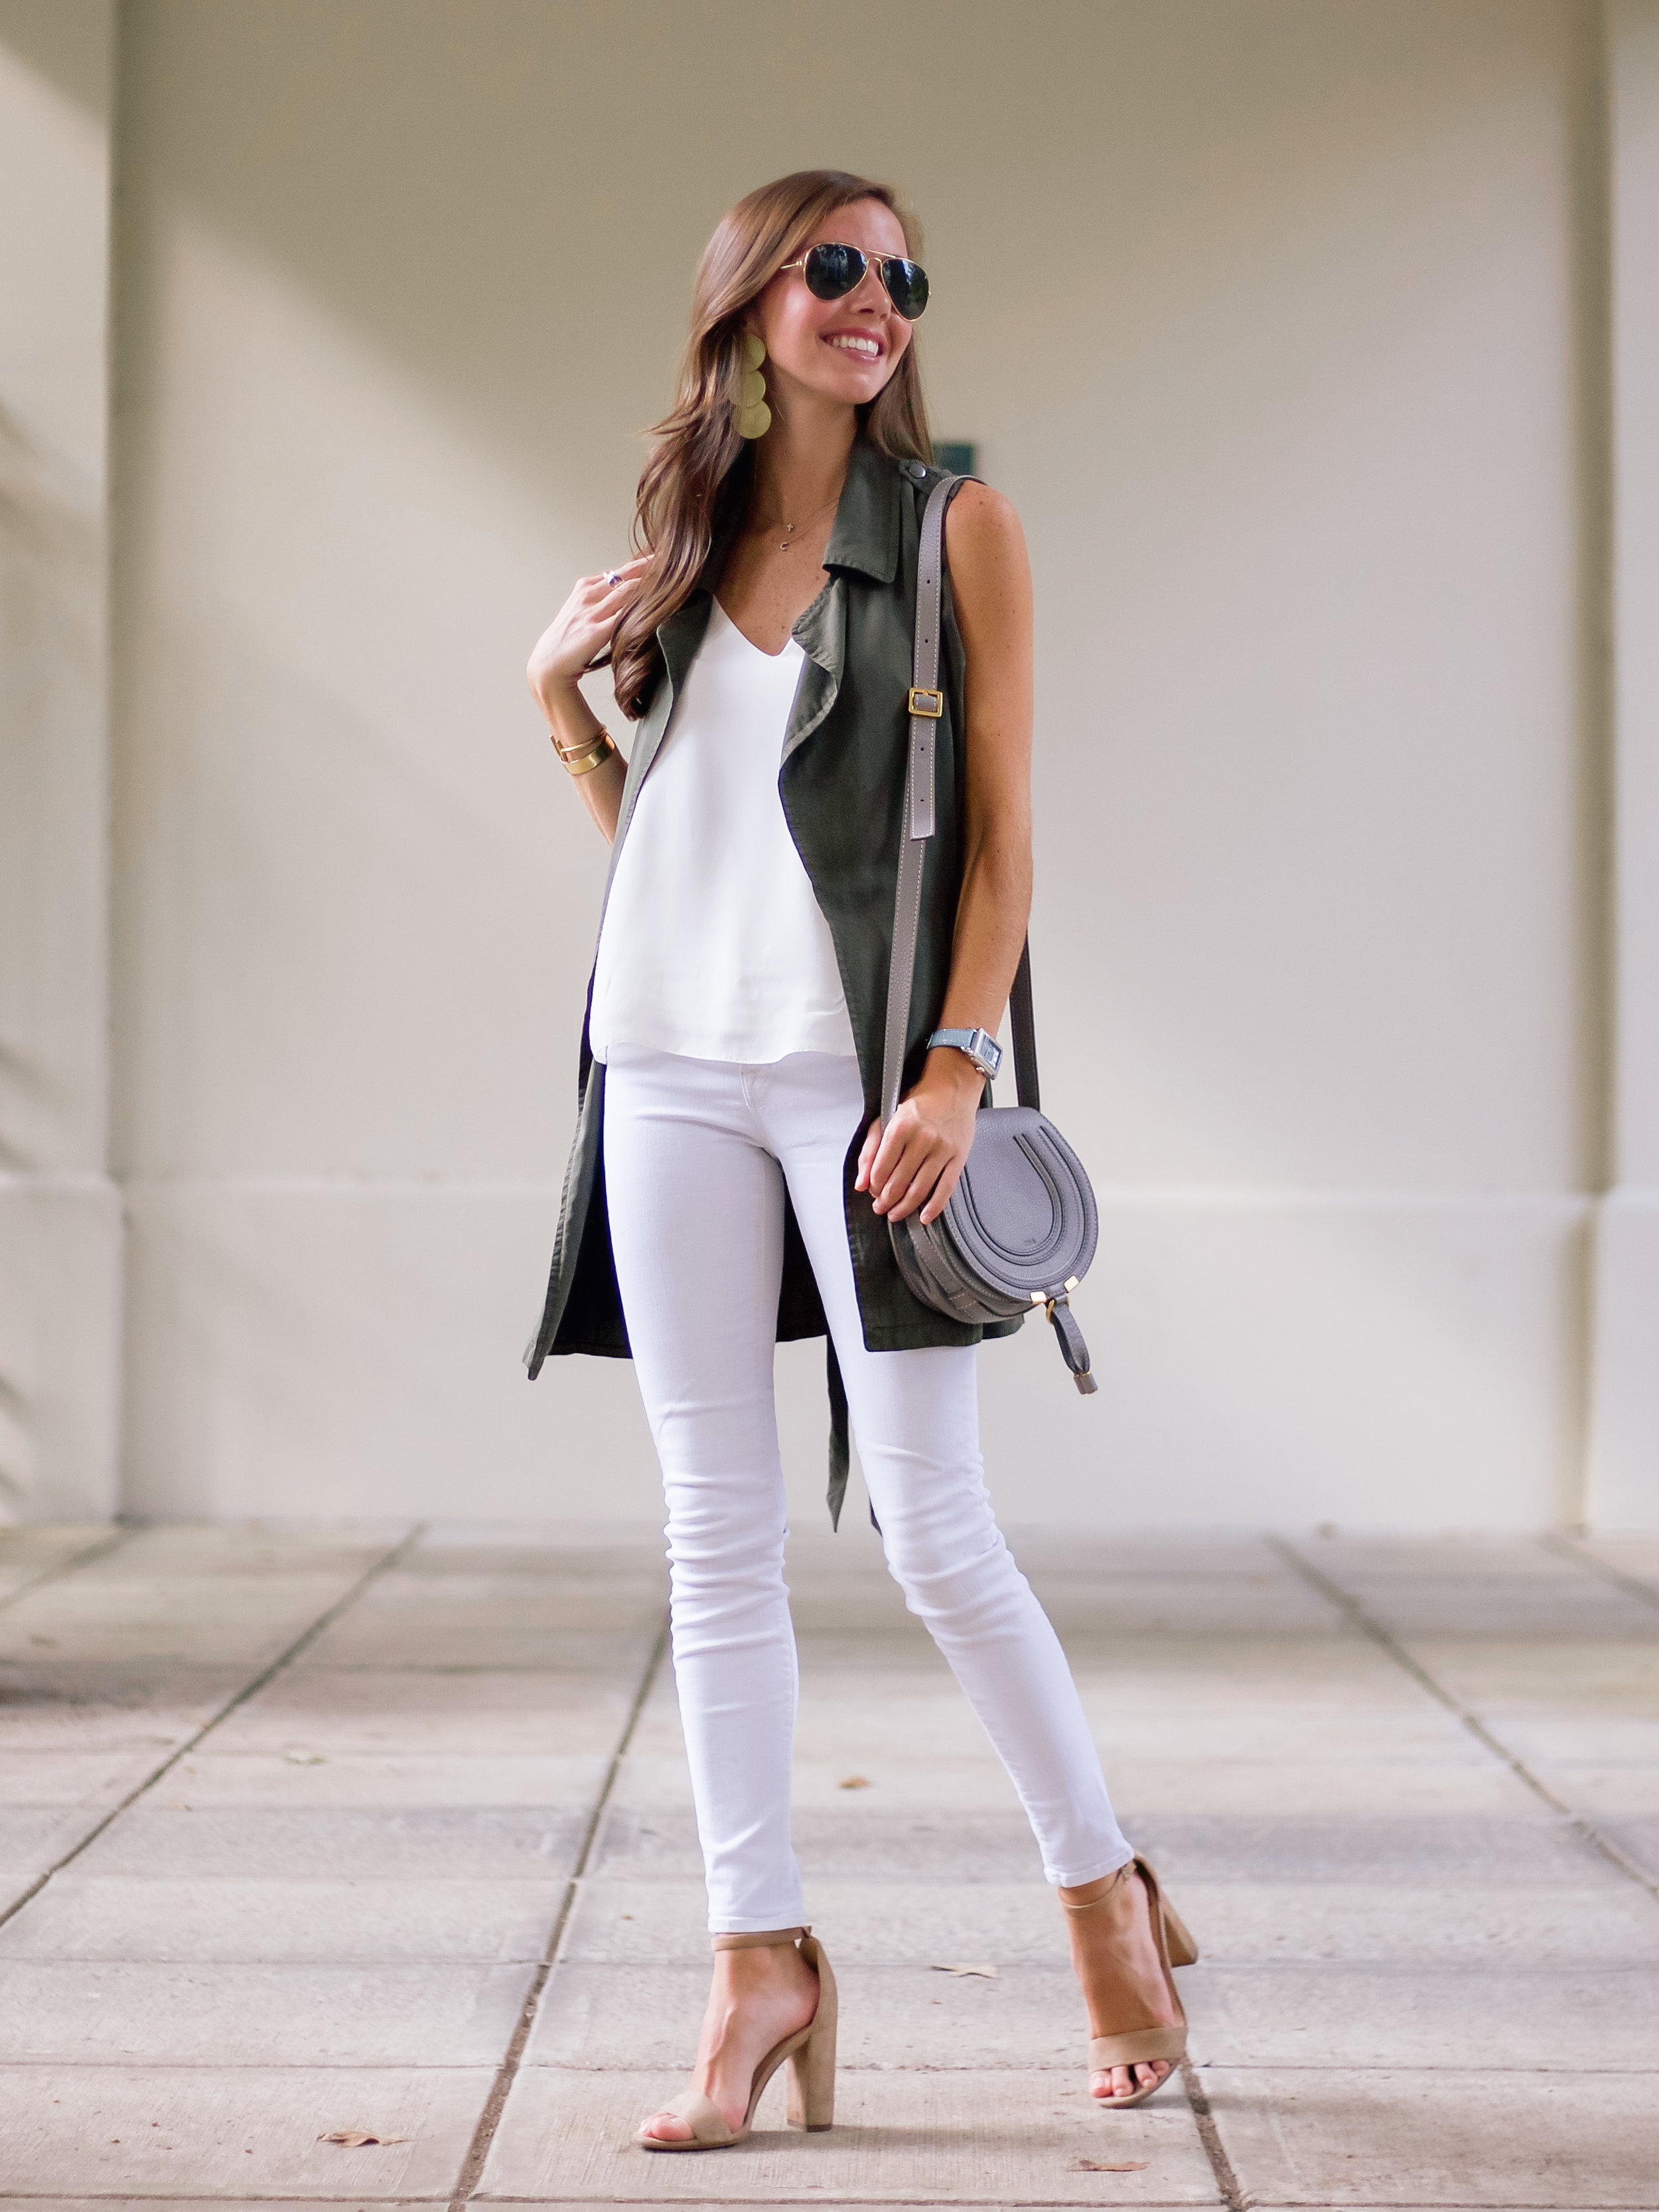 LCB STYLE FASHION BLOGGER MICHELE WATCHES (9 of 40).jpg